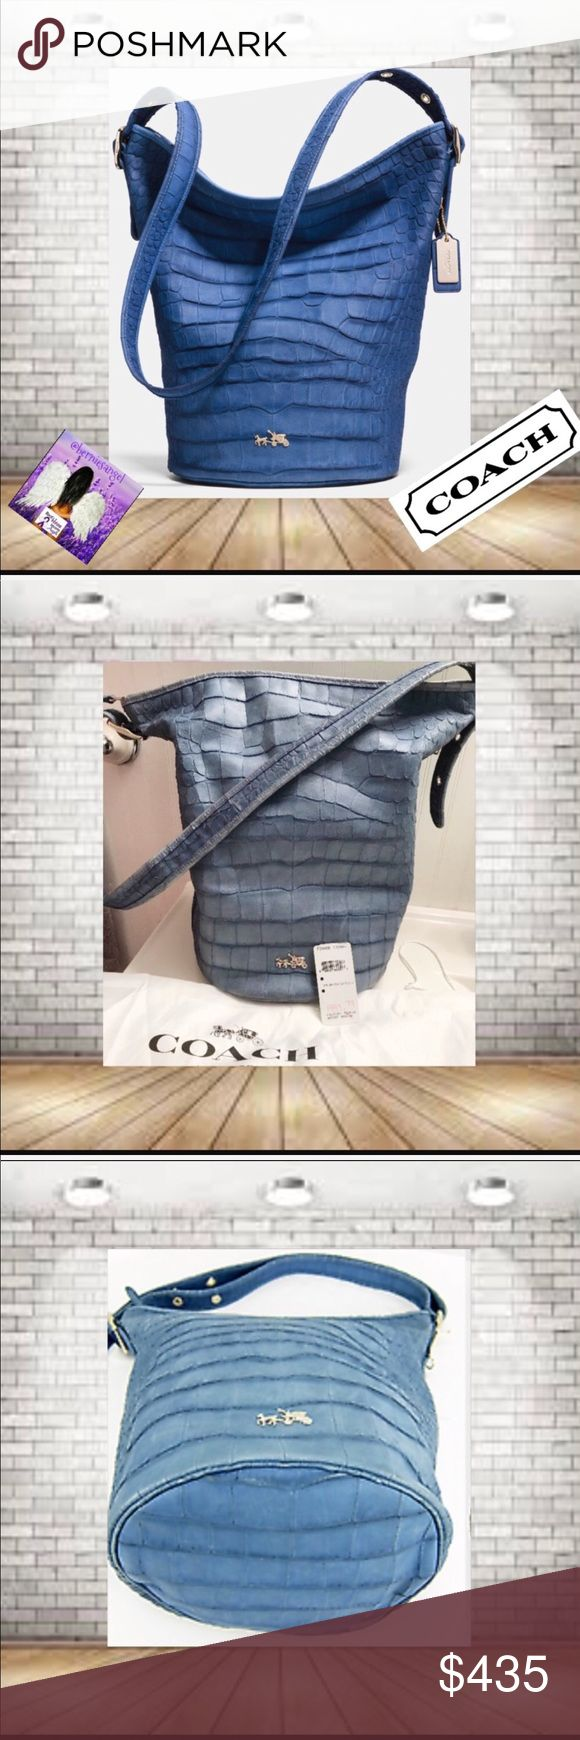 "Coach Croc Embossed Denim Duffle Shoulder Bag NWT Rare Bag December 2014 Pre-Spring Launch Of 2015 Collection. has minor Scratches from Being Displayed. 1st photo is stock.  Flat leather 1.25"" wide handle, adjustable with buckles from 14"" to 22"" drop 2 multi-function slip pockets. zip pocket  Slouch Bag. Hang Tags was not released with the 2014 bags!! Bag has Silver Hang Tag Only. Color photos with light differently.  14.5"" L (top) x 10"" L (bottom) x 13.5"" H  x 9"" D. This bag will ""Weather…"